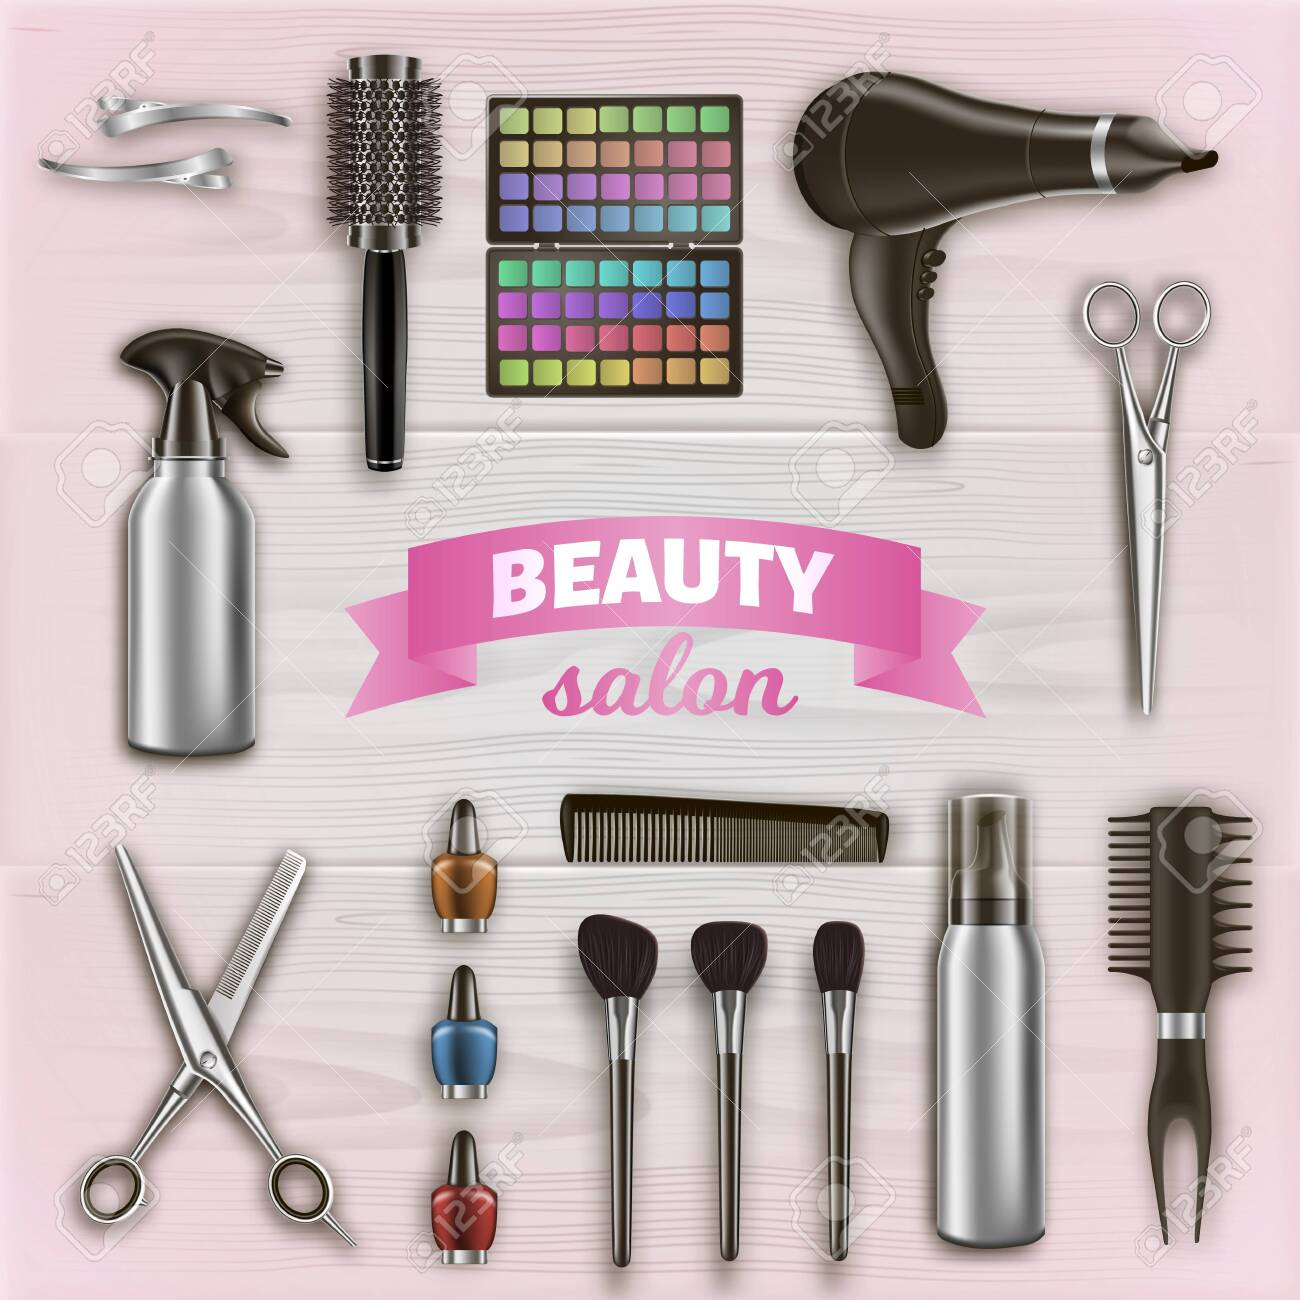 Hairdresser Tools and Cosmetics on Wooden Surface. Scissors and Hairdryer. Logo on Beauty Salon. - 129490427